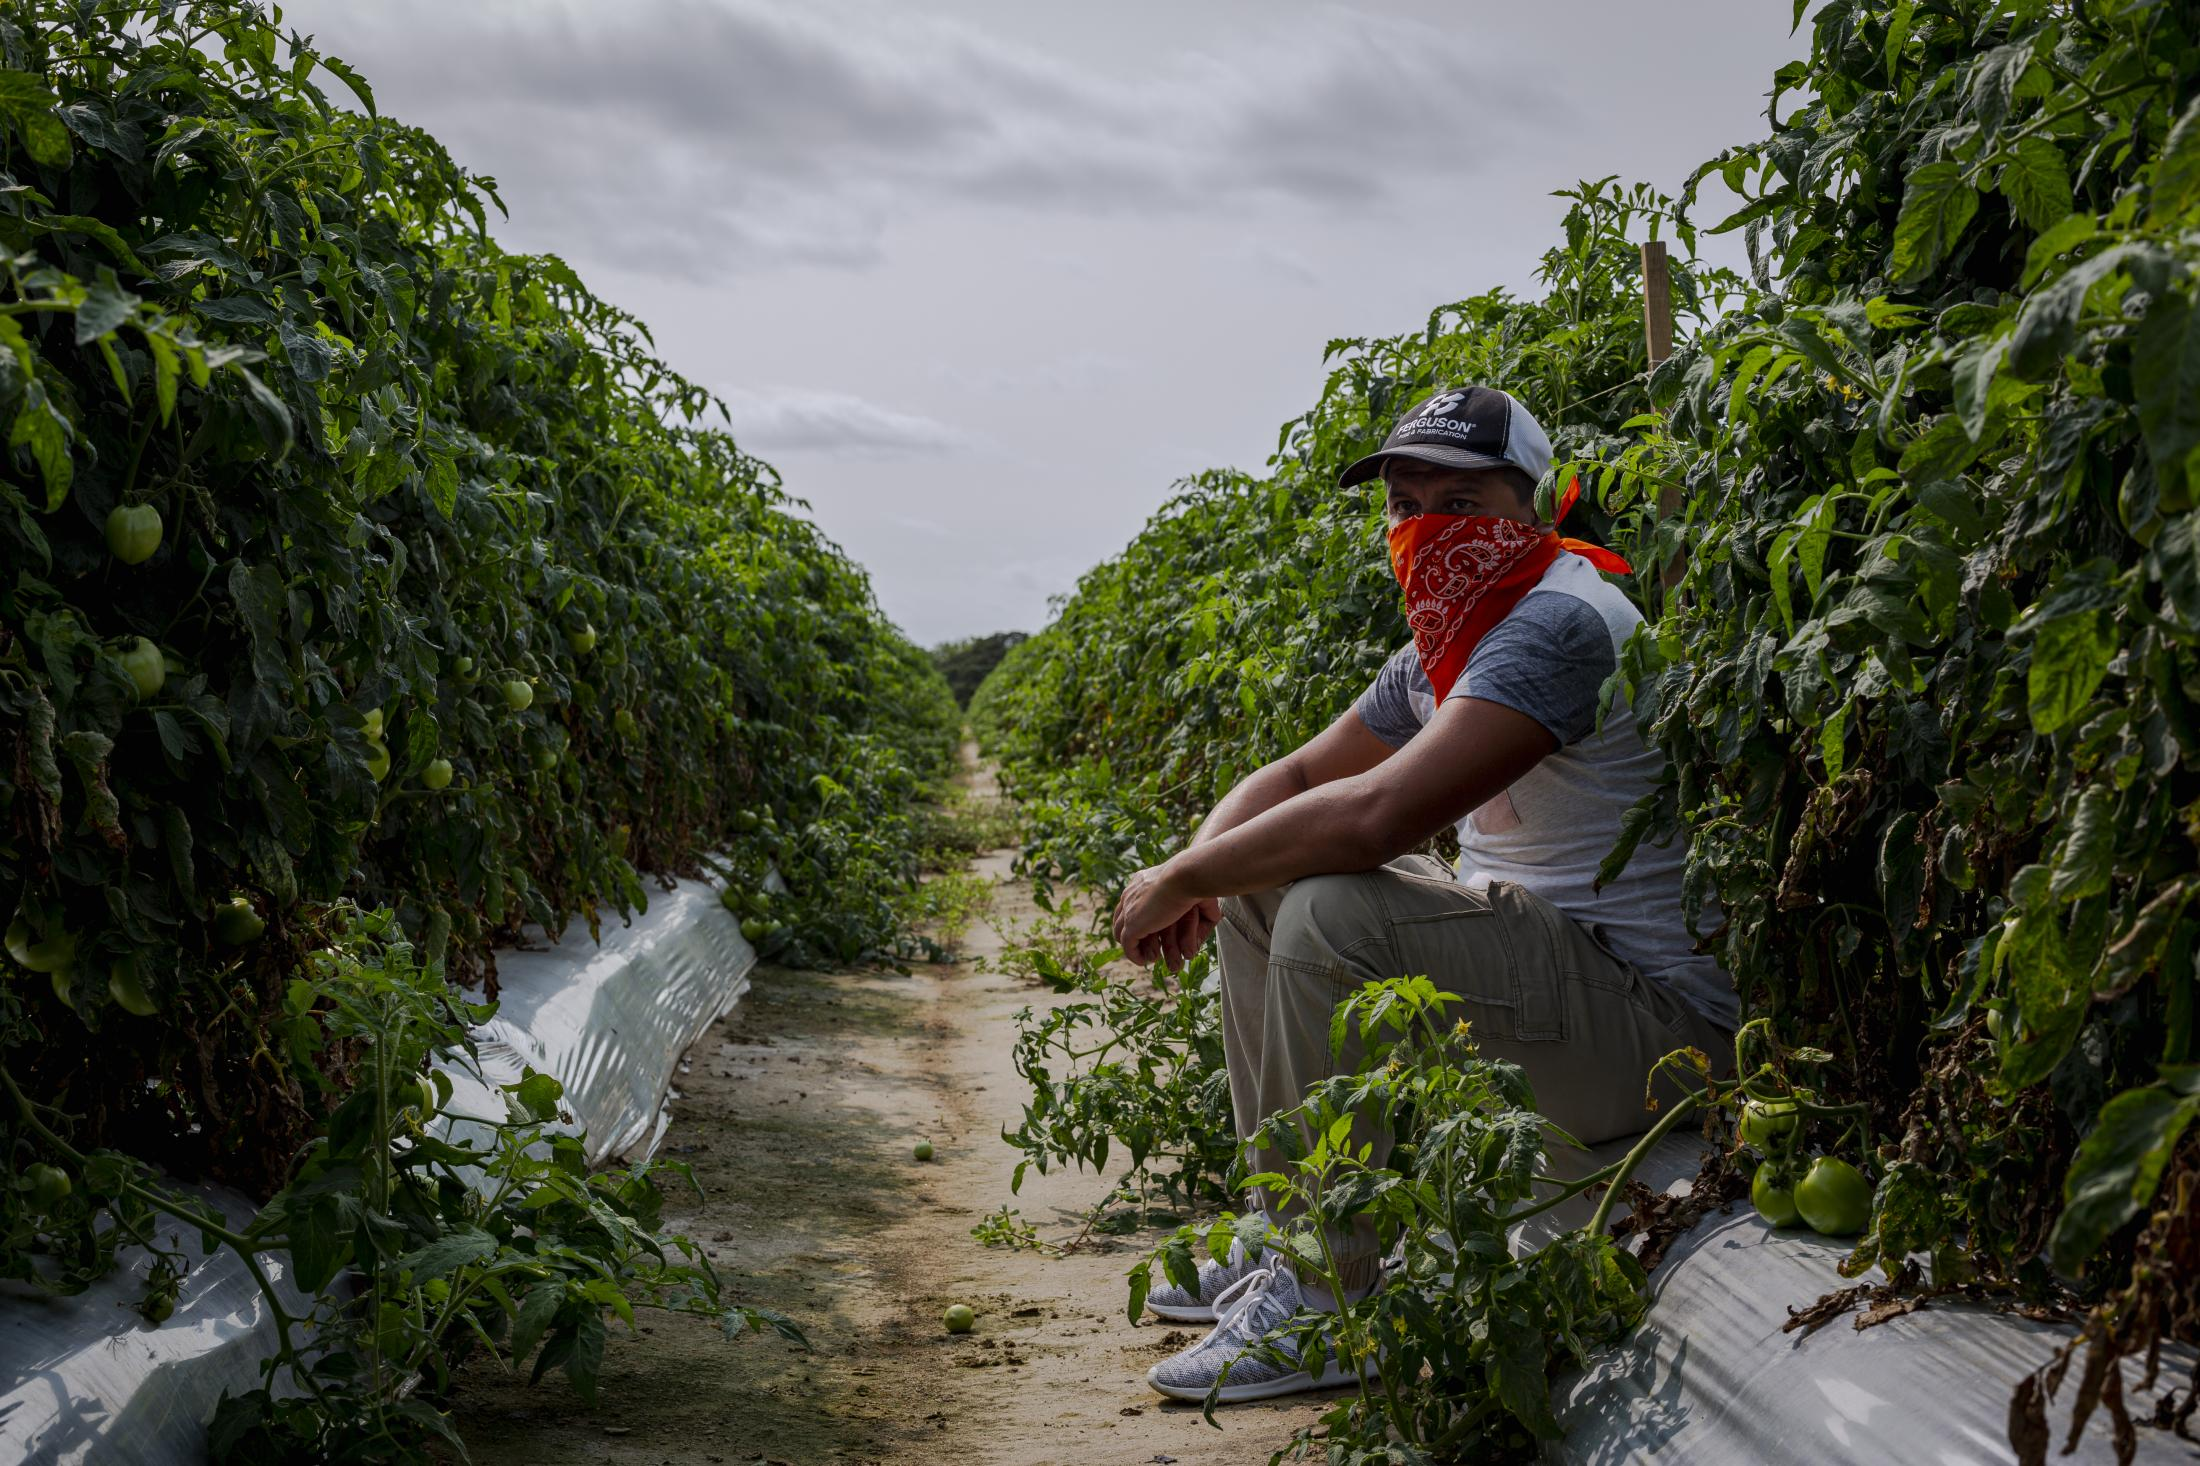 CHERITON, VA – September 9, 2020: Seasonal farmworker pose for a portrait in one of the many tomato fields in the remote Eastern Shore of Virginia. Seasonal farmworkers are brought by the thousands to toil in the tomato fields, since the start of the covid-19 pandemic, their conditions have worsened. Photo: Carlos Bernate for The New York Times